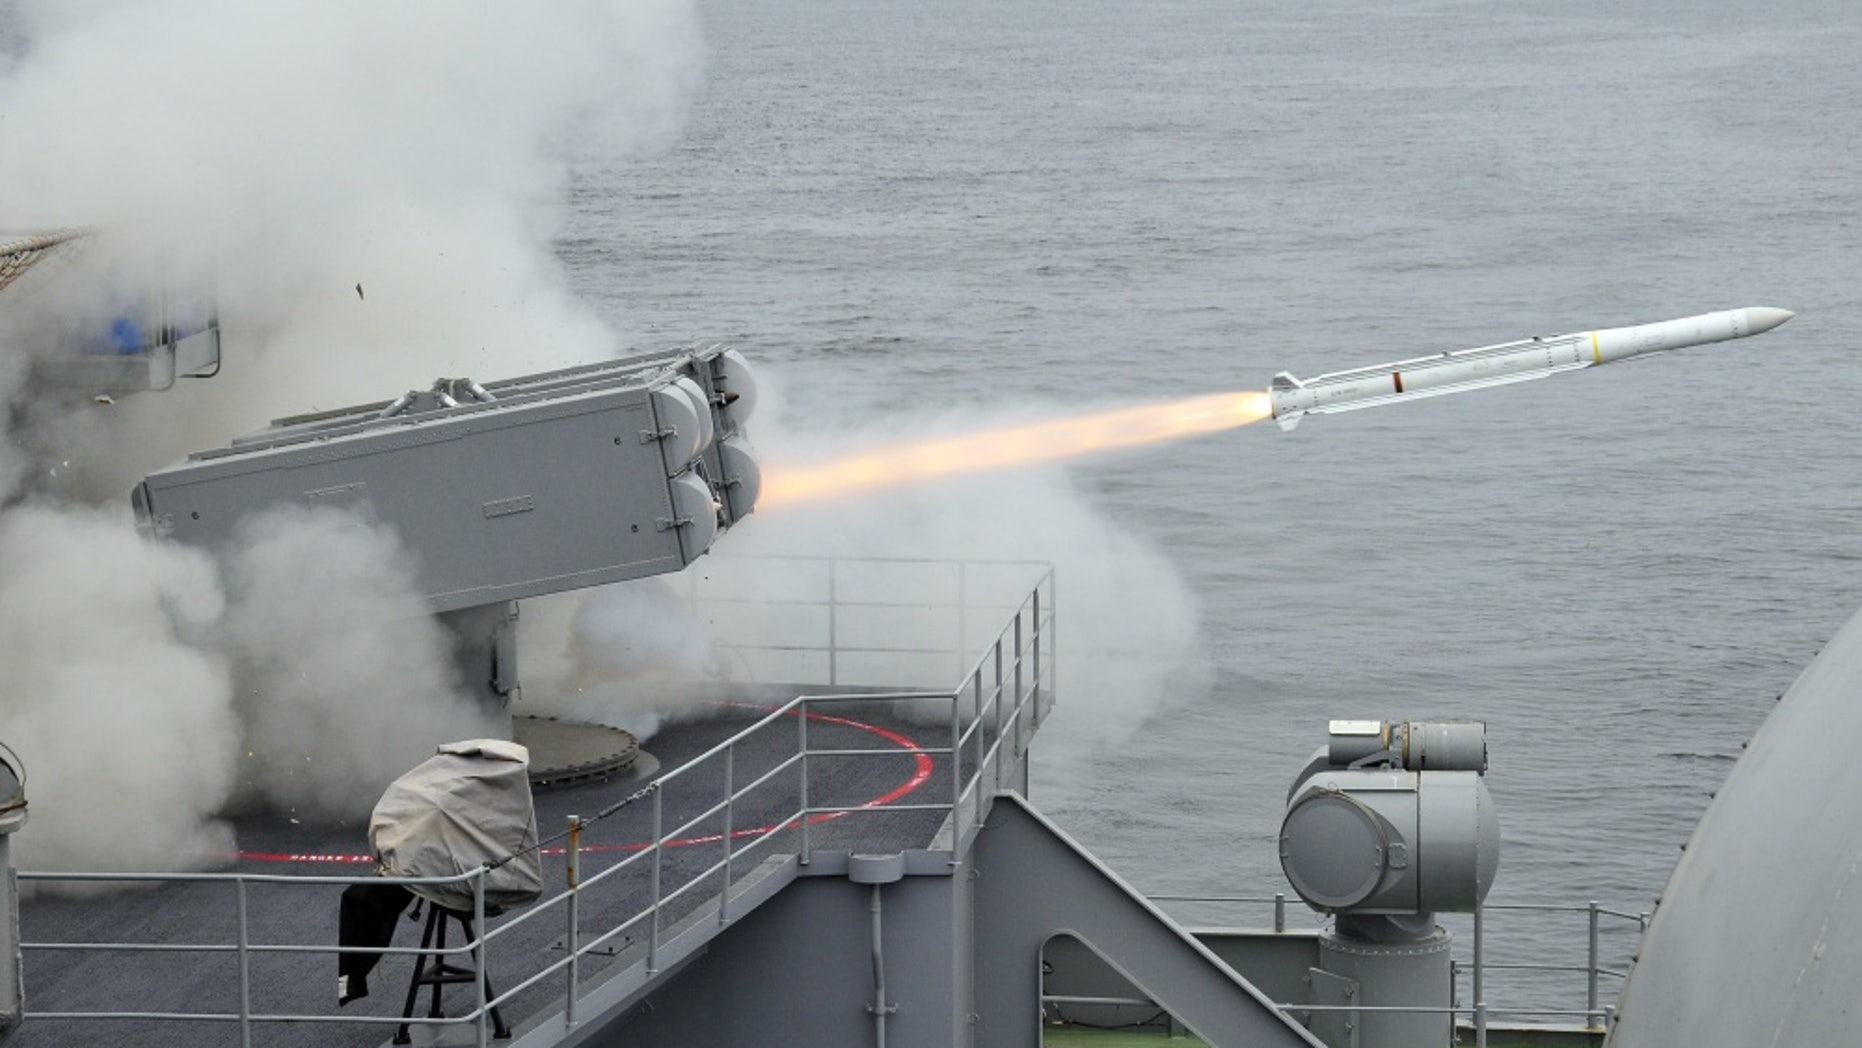 File photo - An Evolved Sea Sparrow missile is launched from the aircraft carrier USS Carl Vinson. (U.S. Navy photo/Petty Officer 3rd Class Patrick Green)